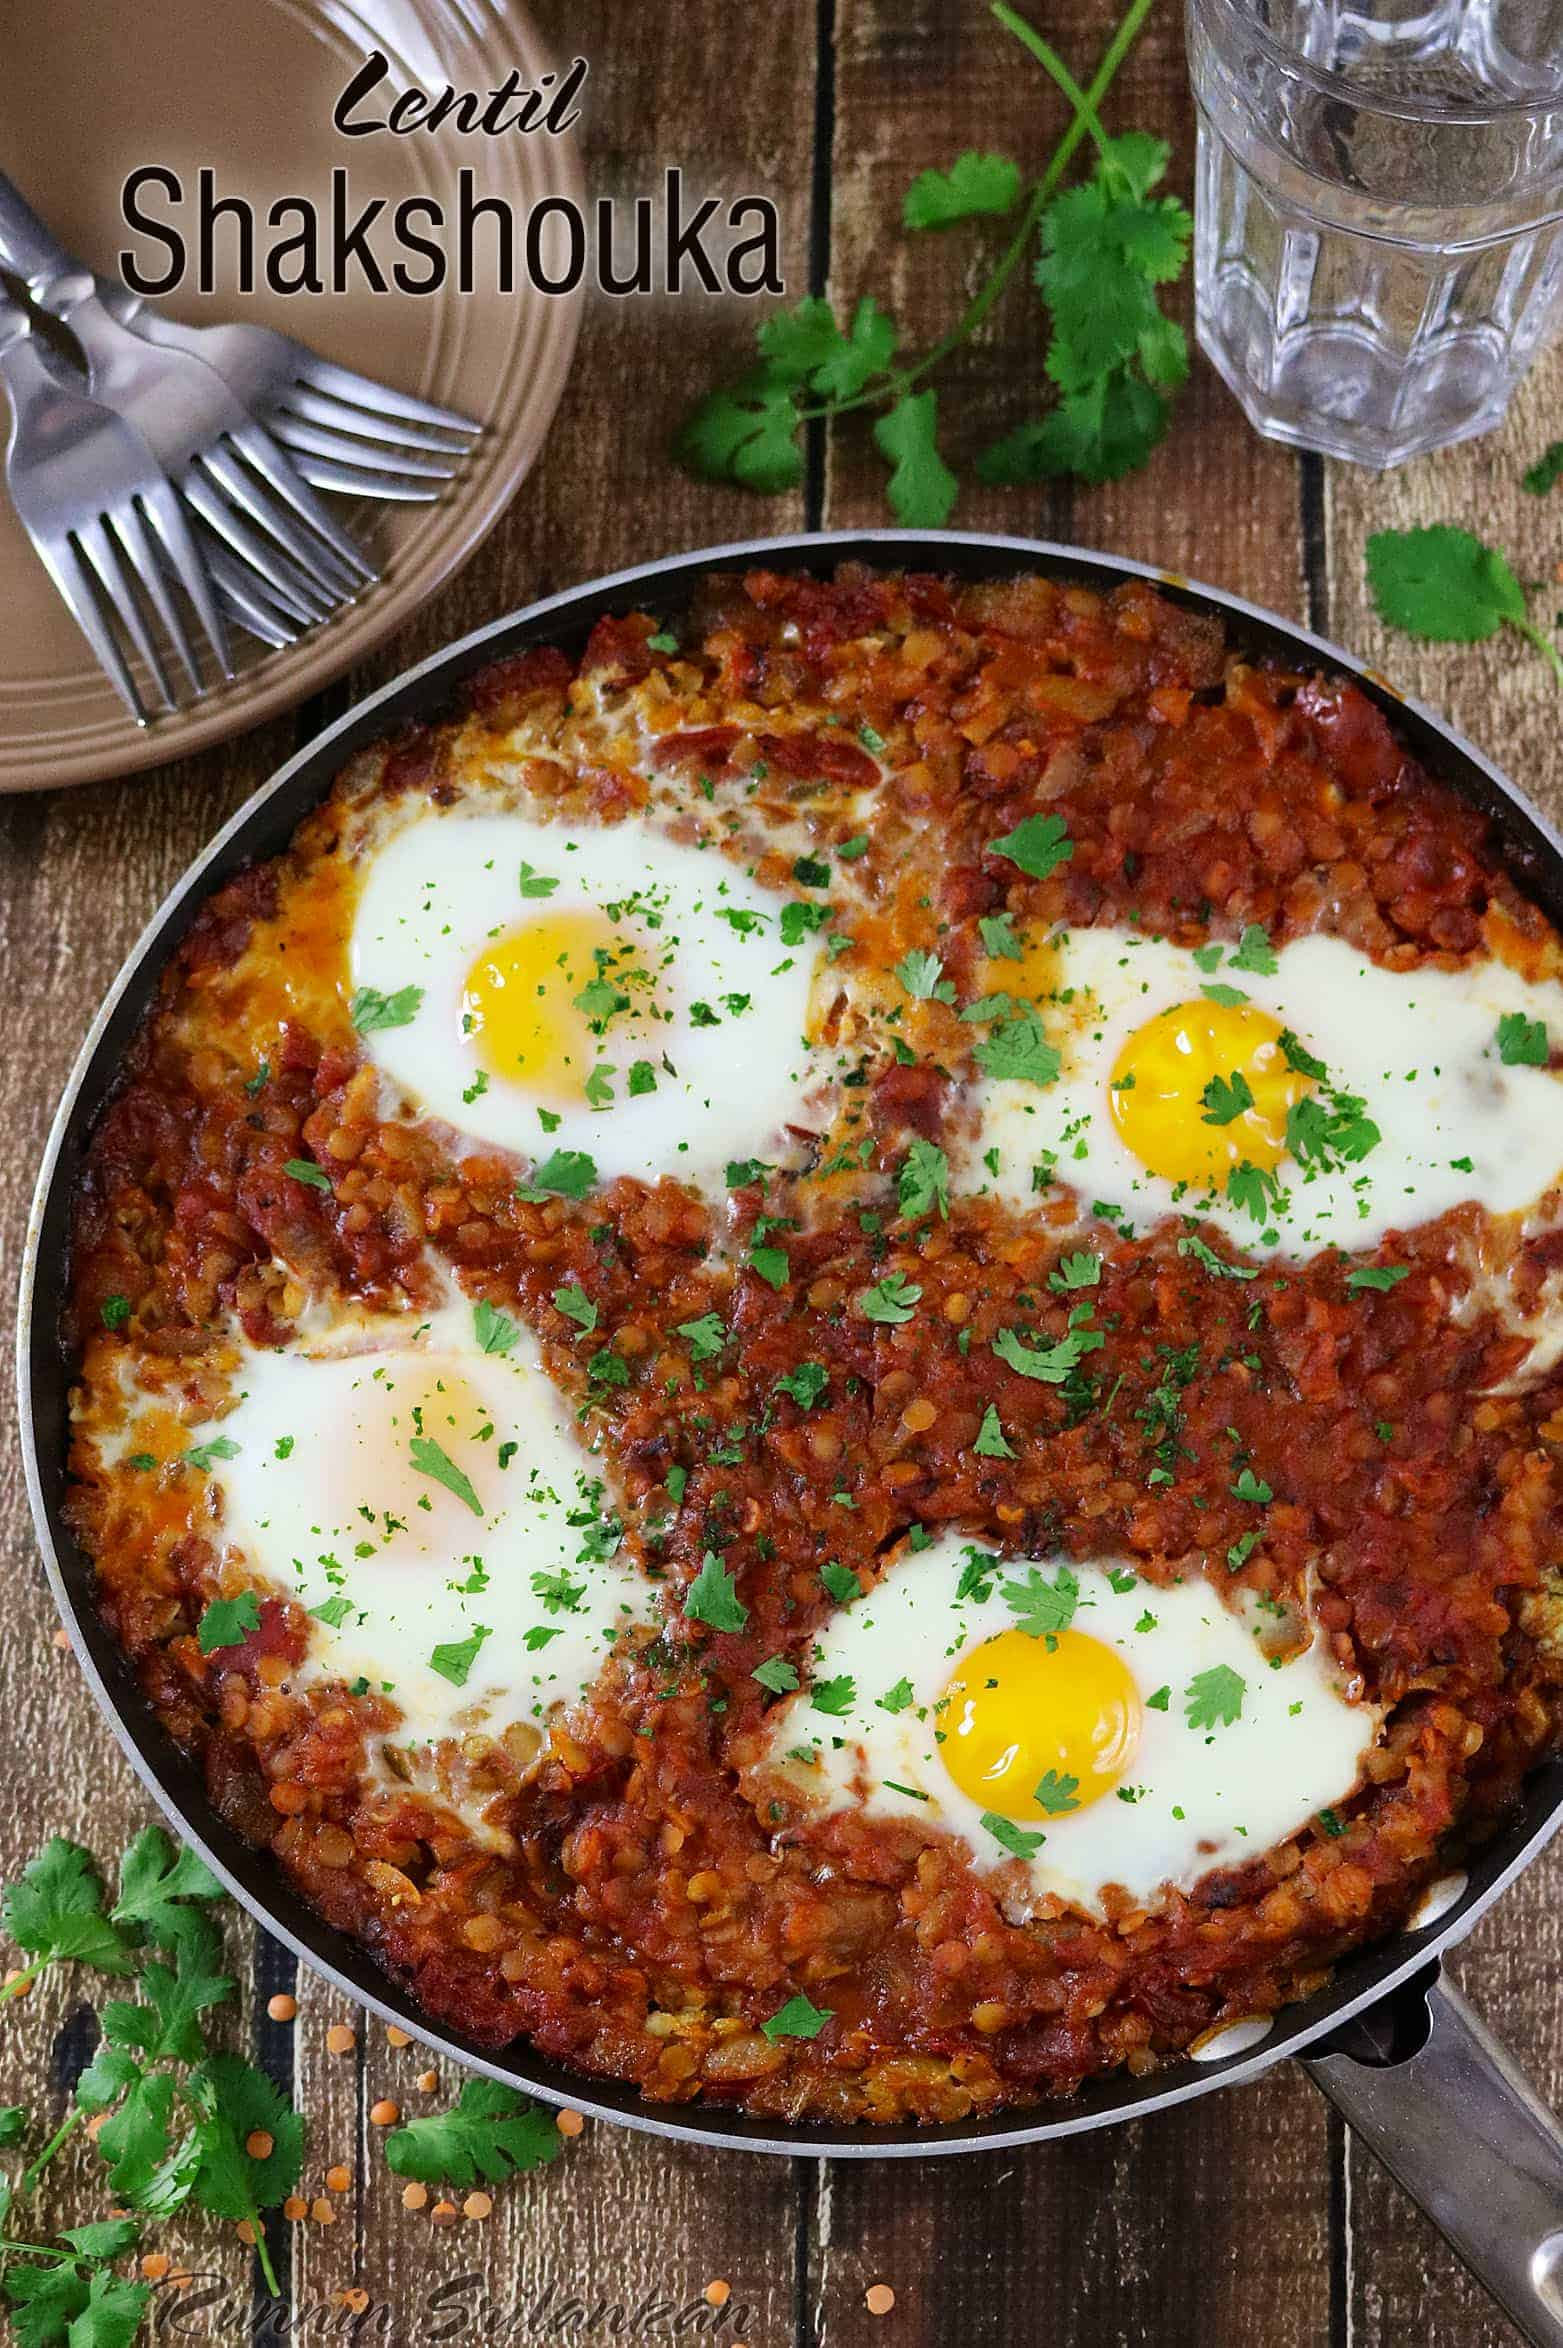 Lentil Shakshuka - a simple and hearty vegetarian dinner. Recipe can be found at http://RunninSrilankan.com